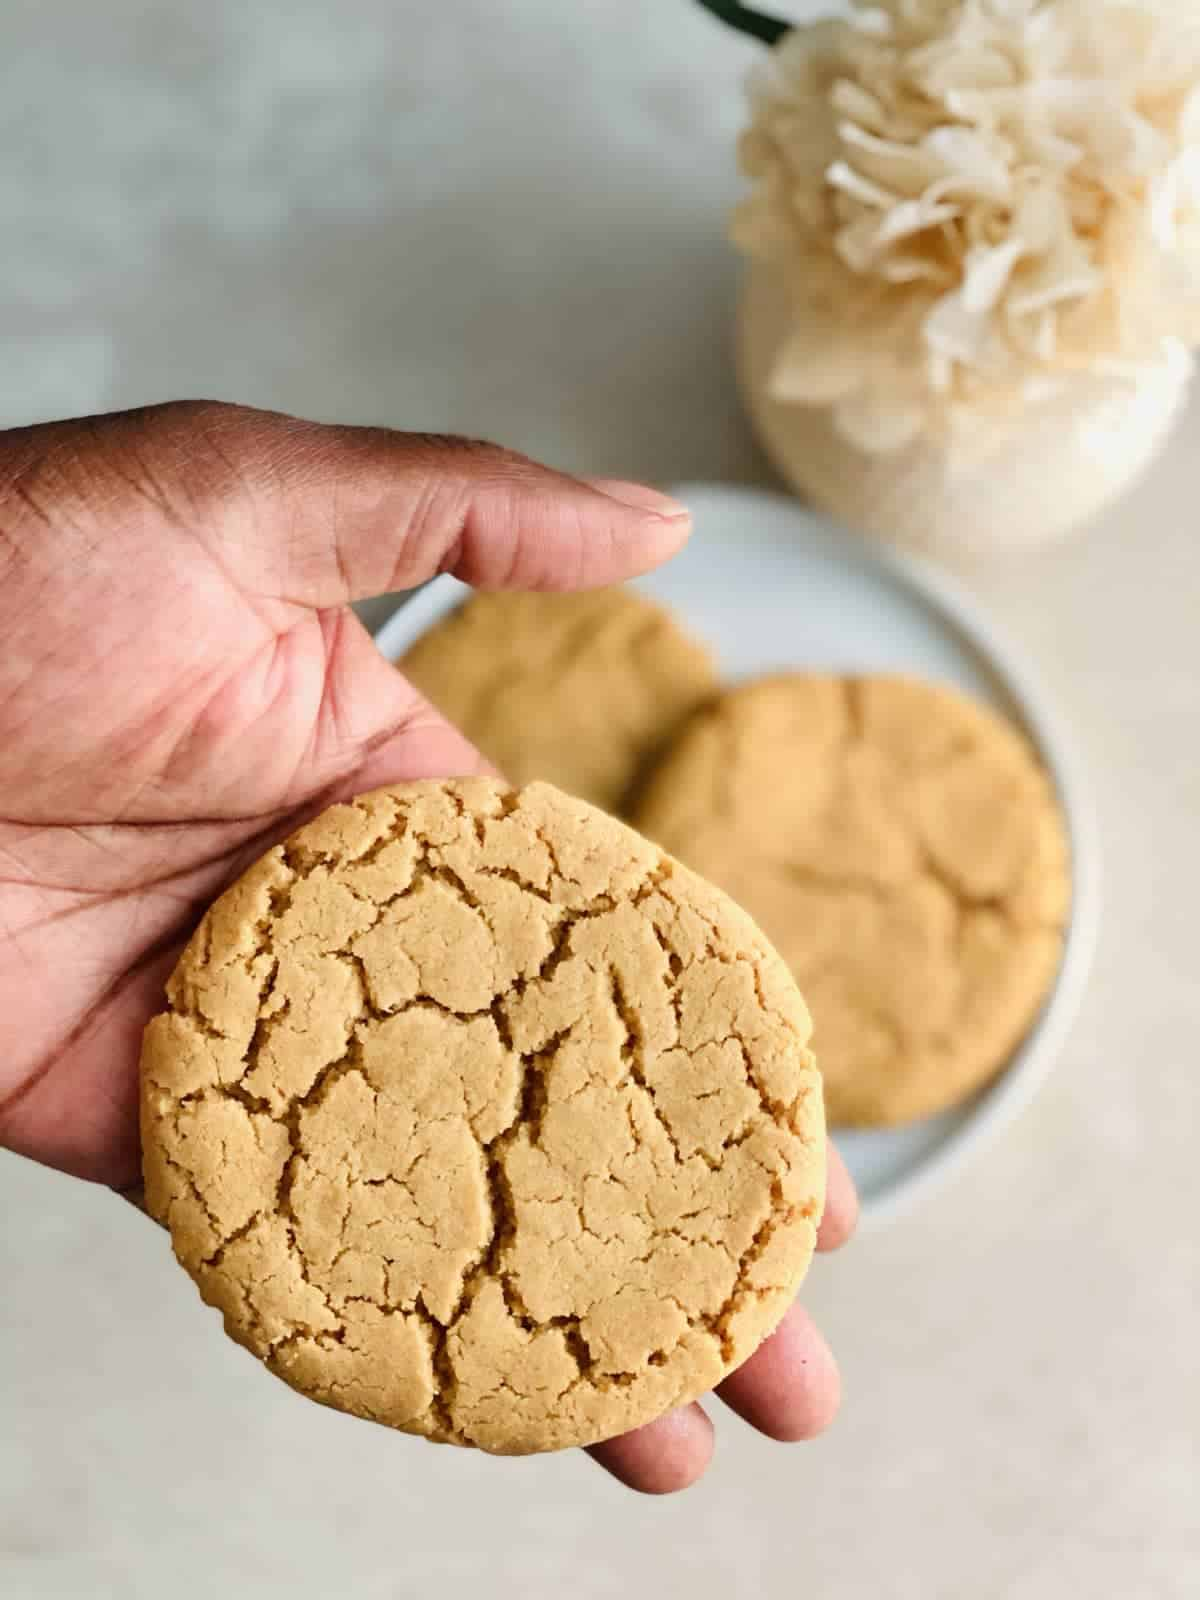 Hand holding one gluten-free peanut butter cookies over a white plate with two more cookies